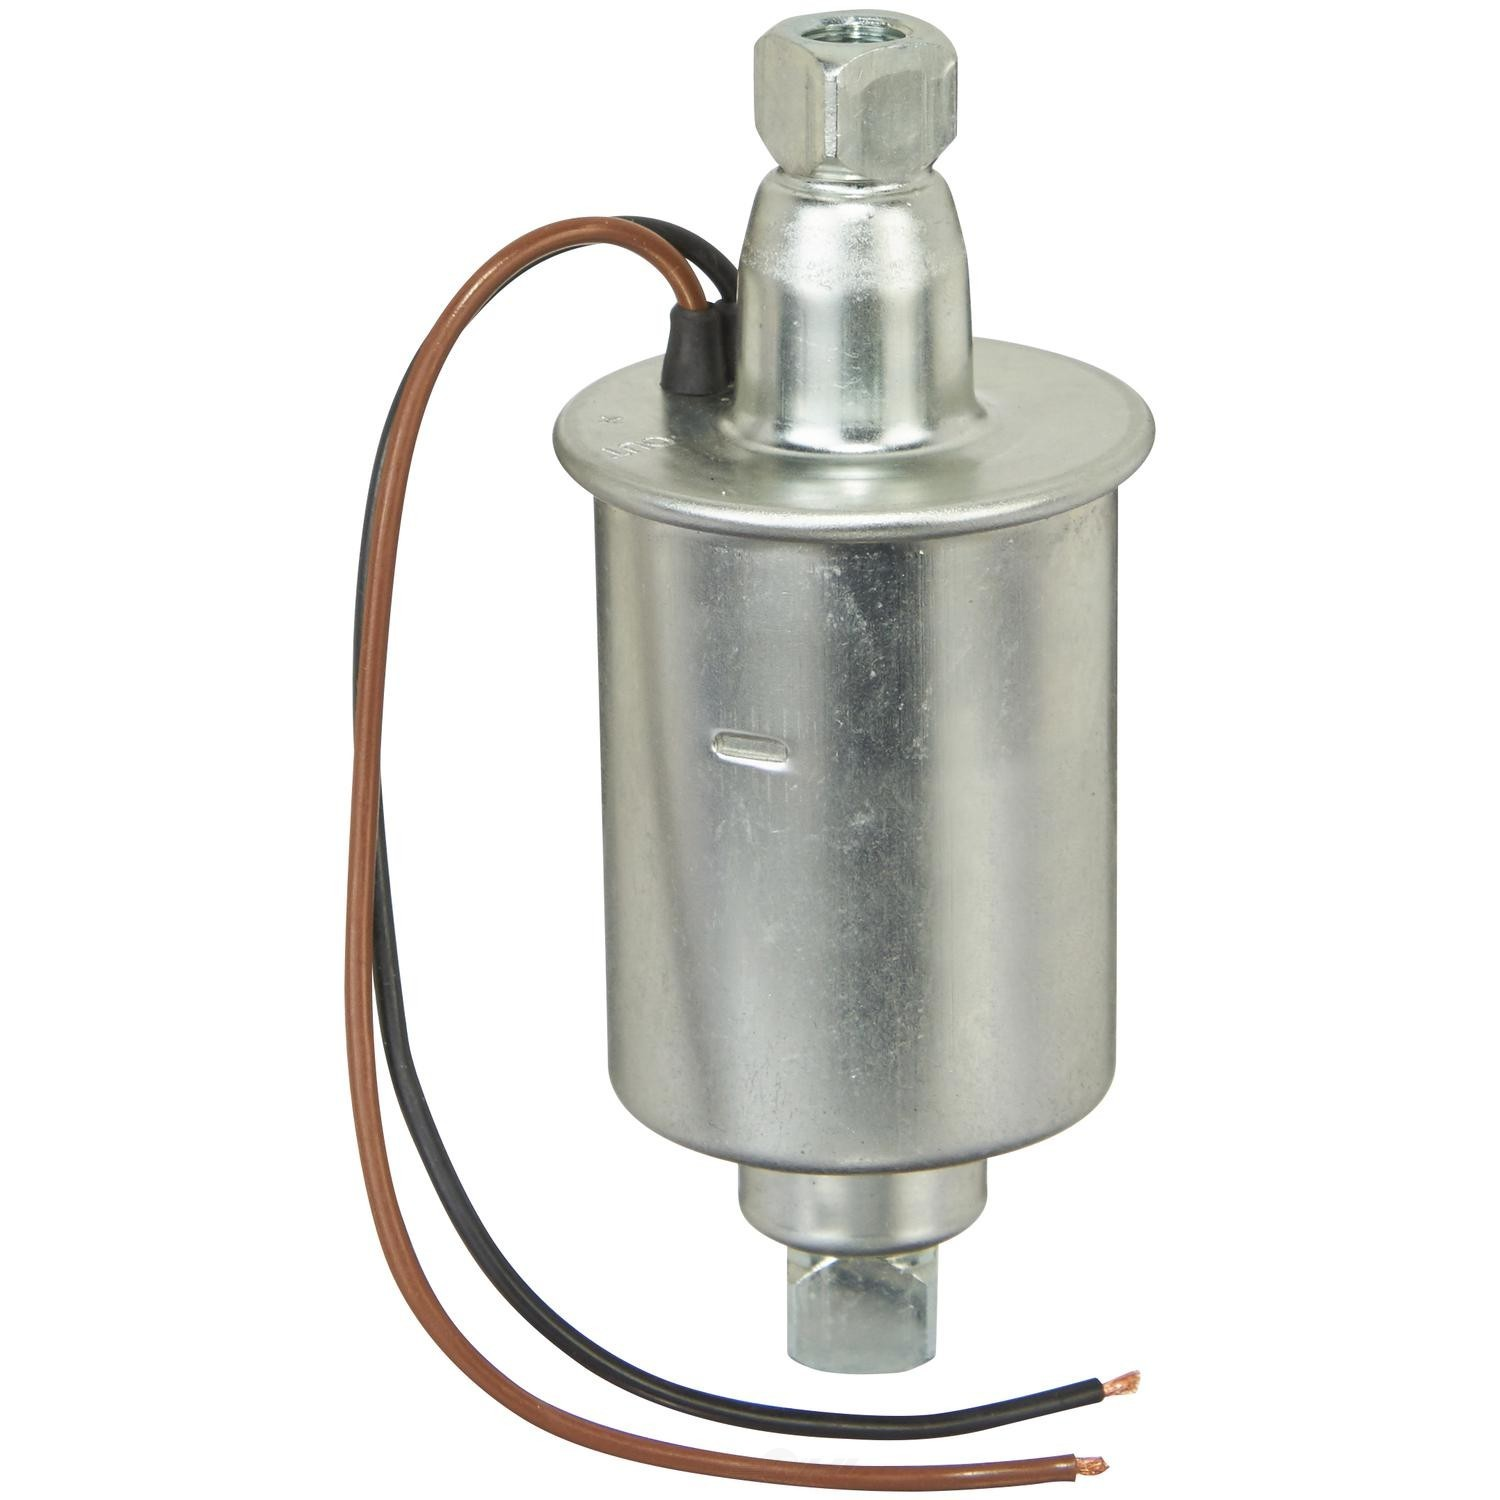 SPECTRA PREMIUM IND, INC. - Electric Fuel Pump - SPC SP8016